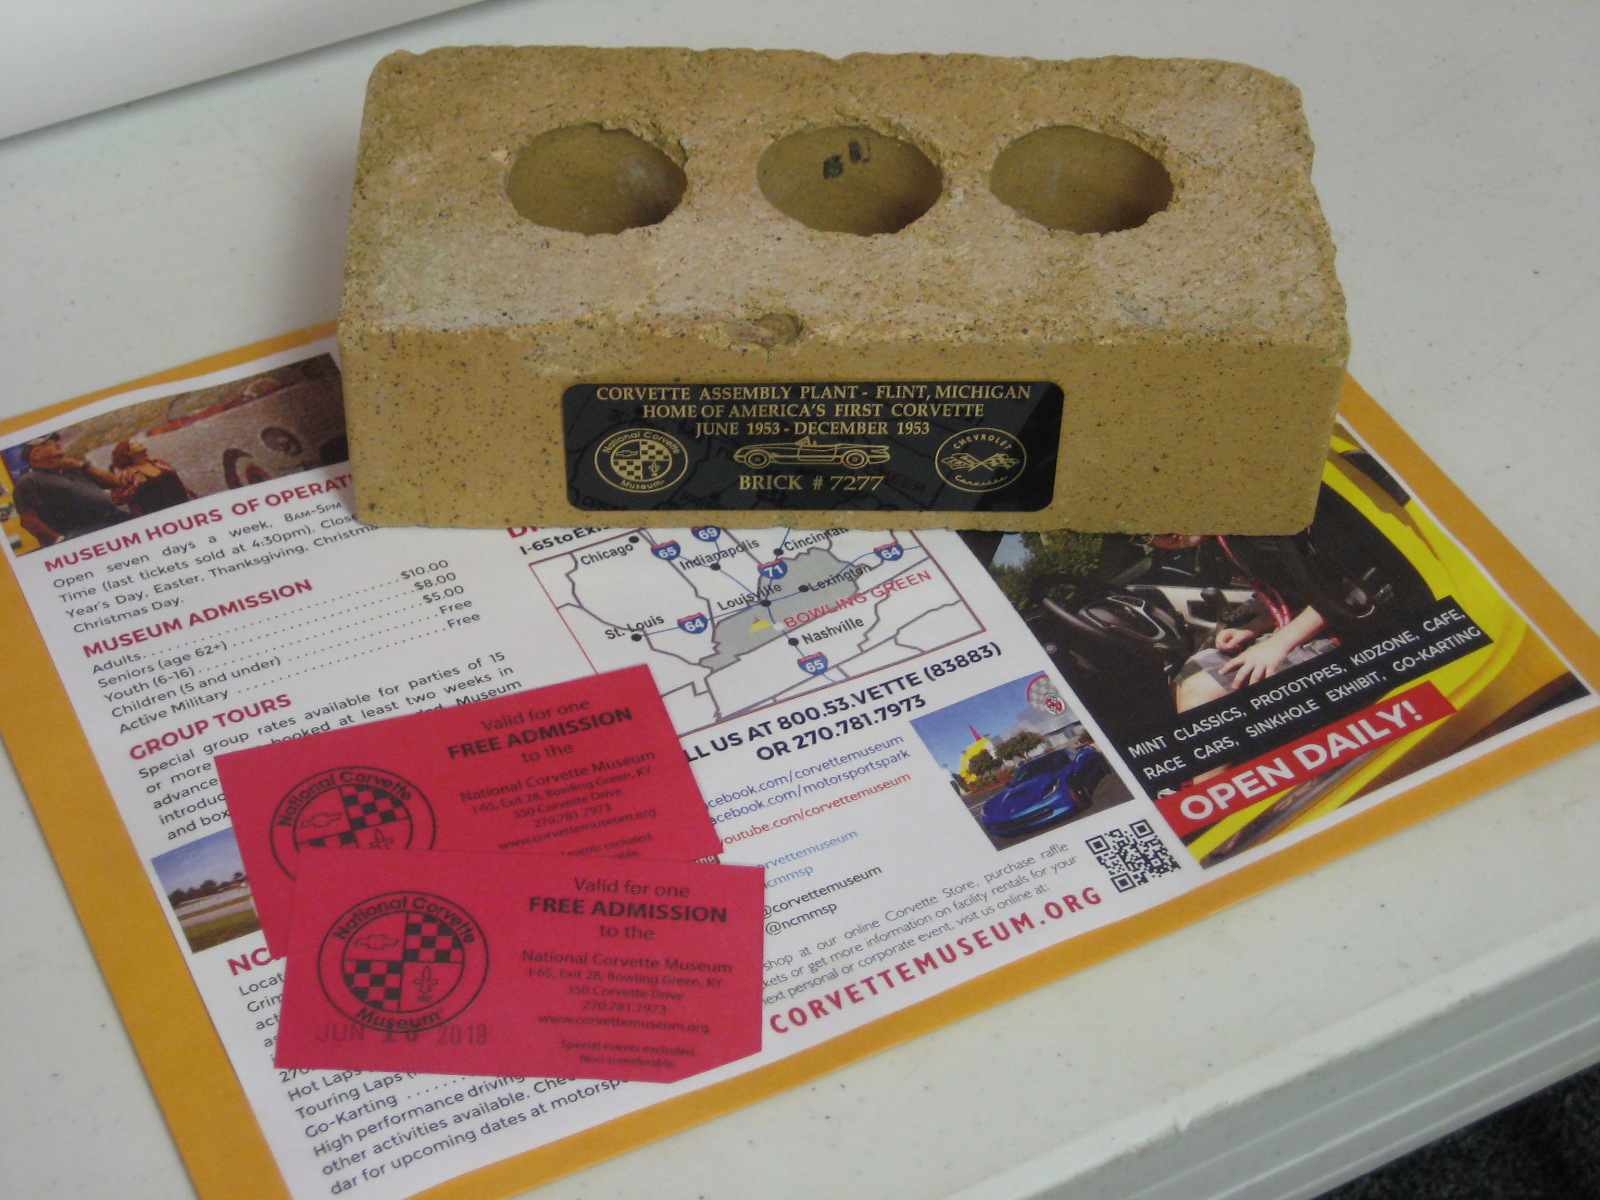 Actual Brick from Corvette Assembly Plant & 2 Tickets